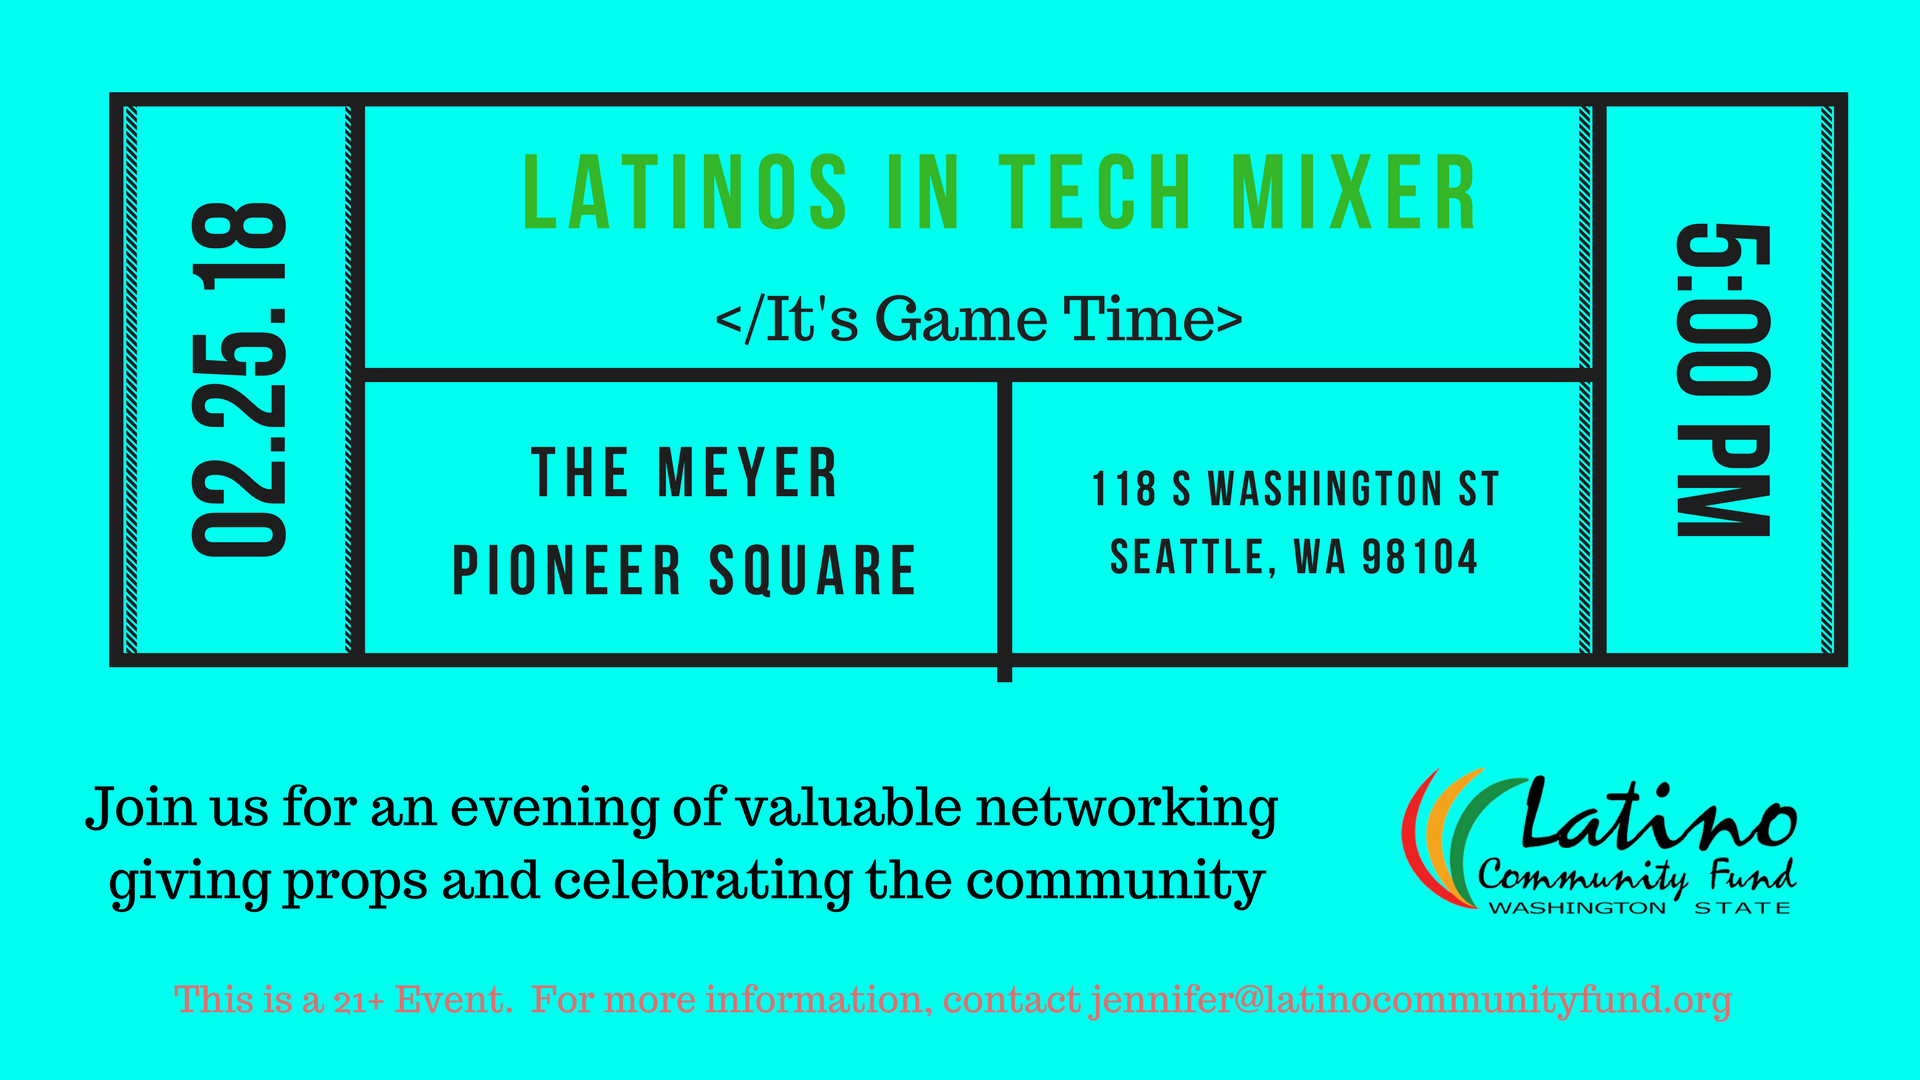 022518_LCF_Latinos_in_Tech_Mixer_FB_Event.png